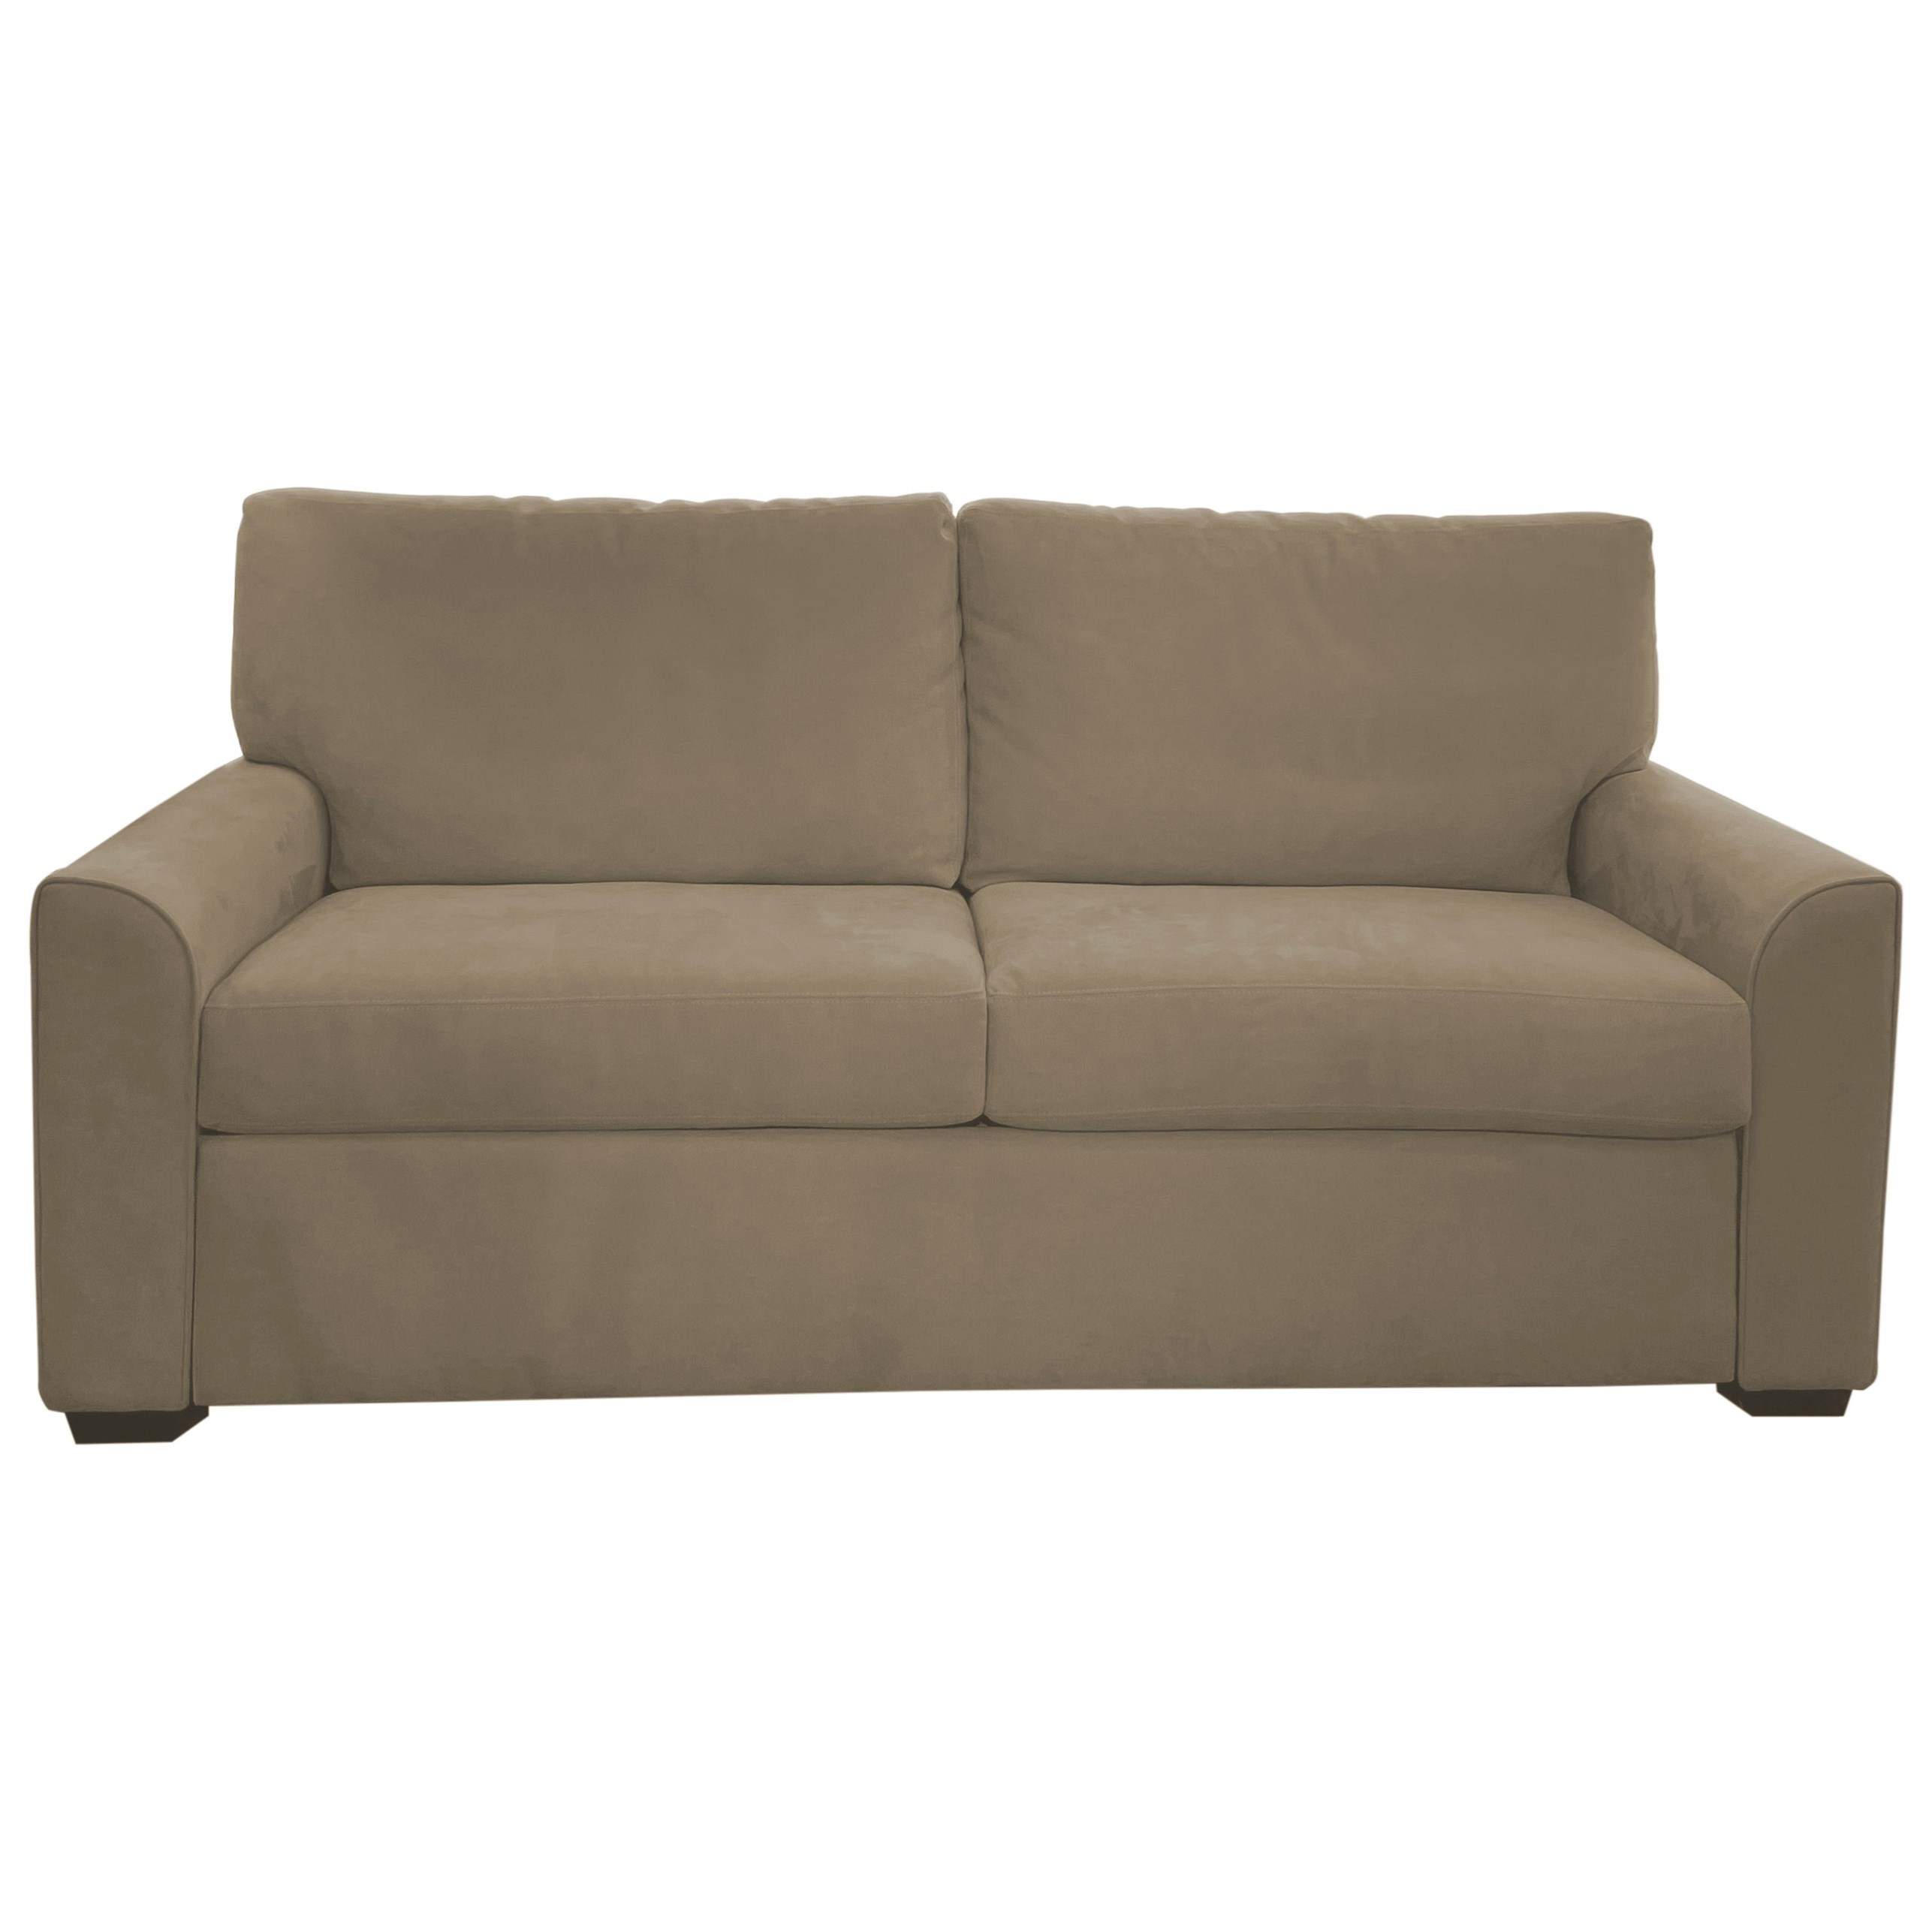 Klein Queen Sofabed by American Leather at Williams & Kay